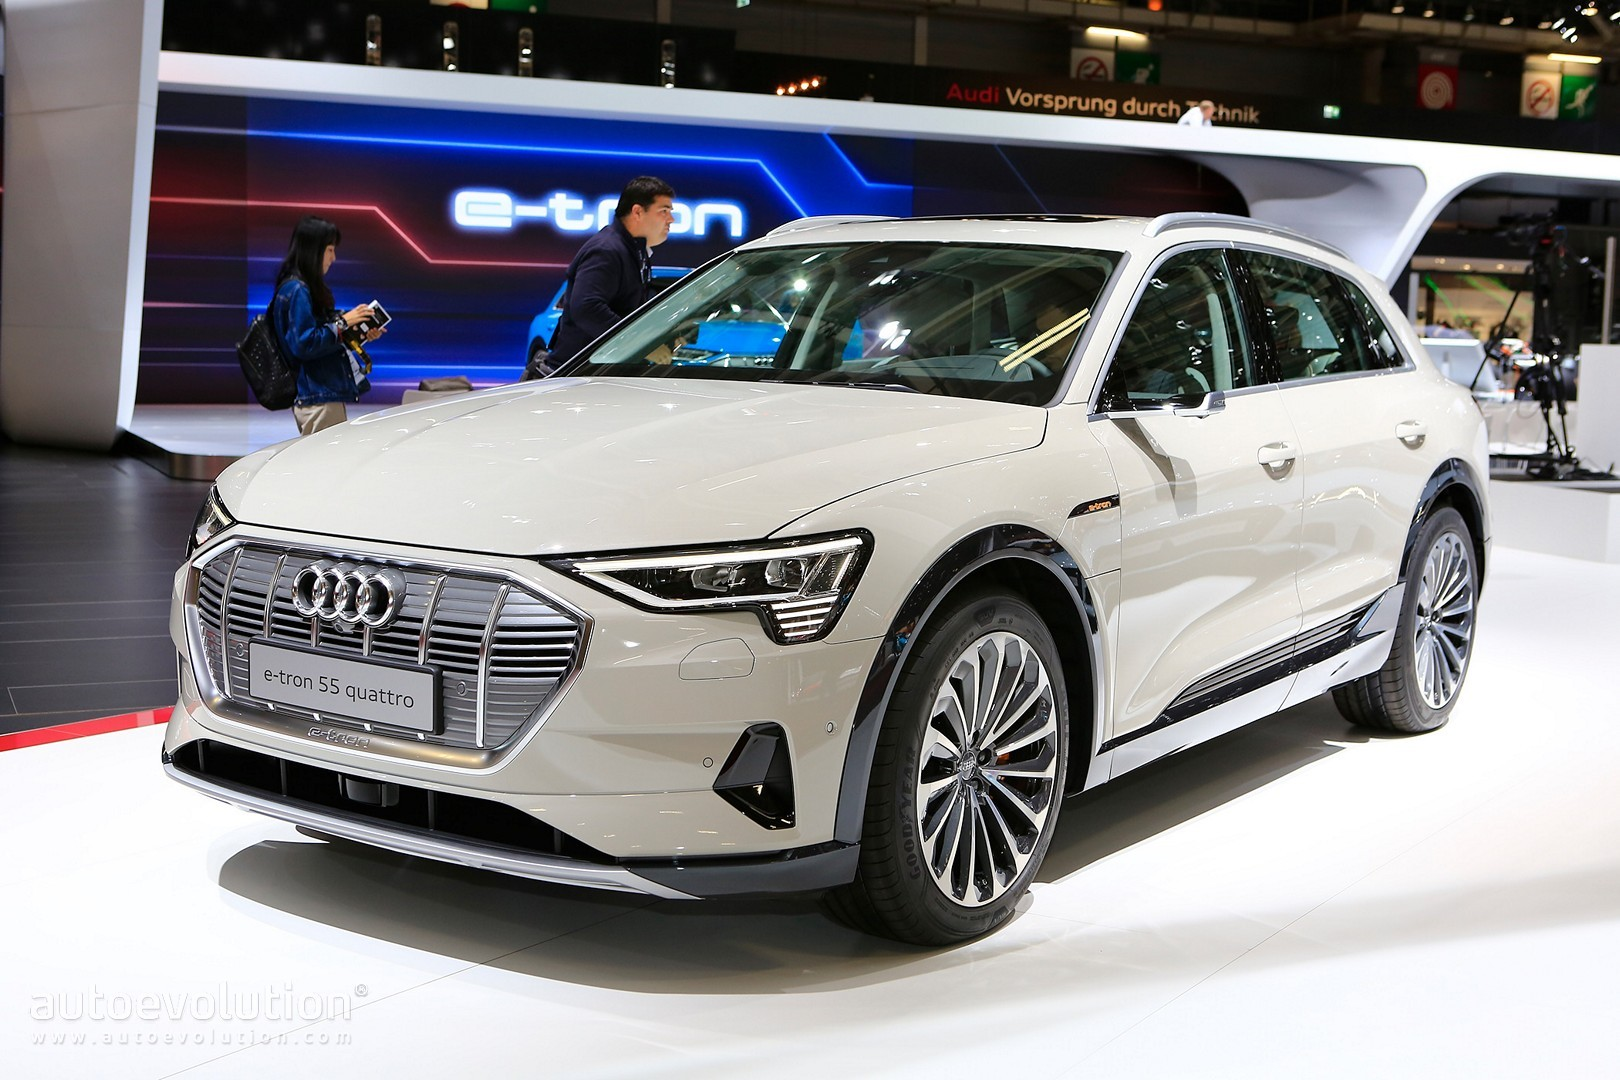 Audi E Tron Suv Shows Eqc Beating Frunk Rearview Cameras